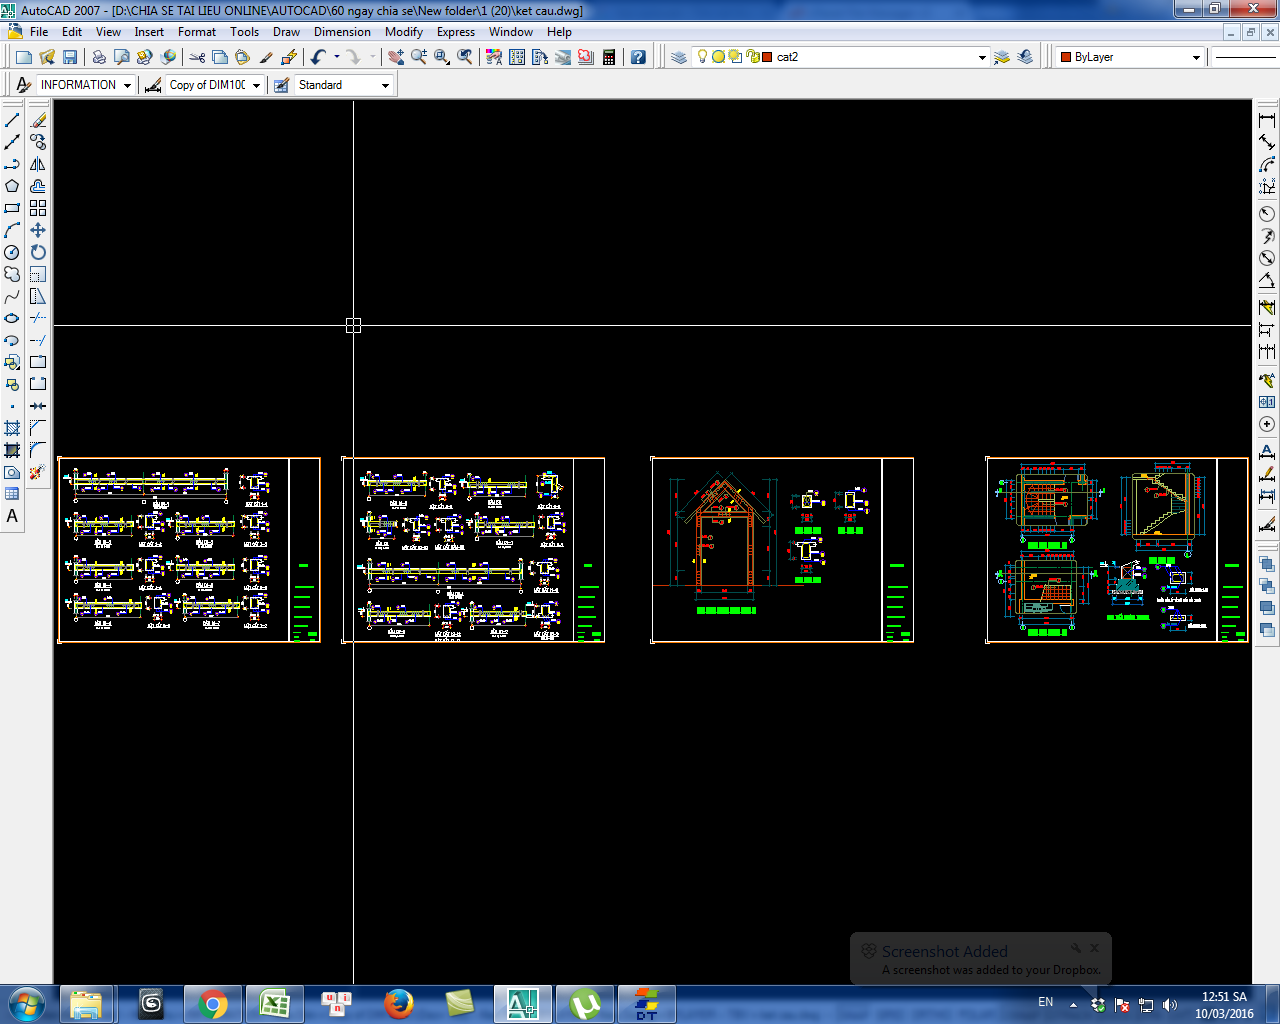 tim-trung-tap-day-autocad-2d-o-hai-phong (1)